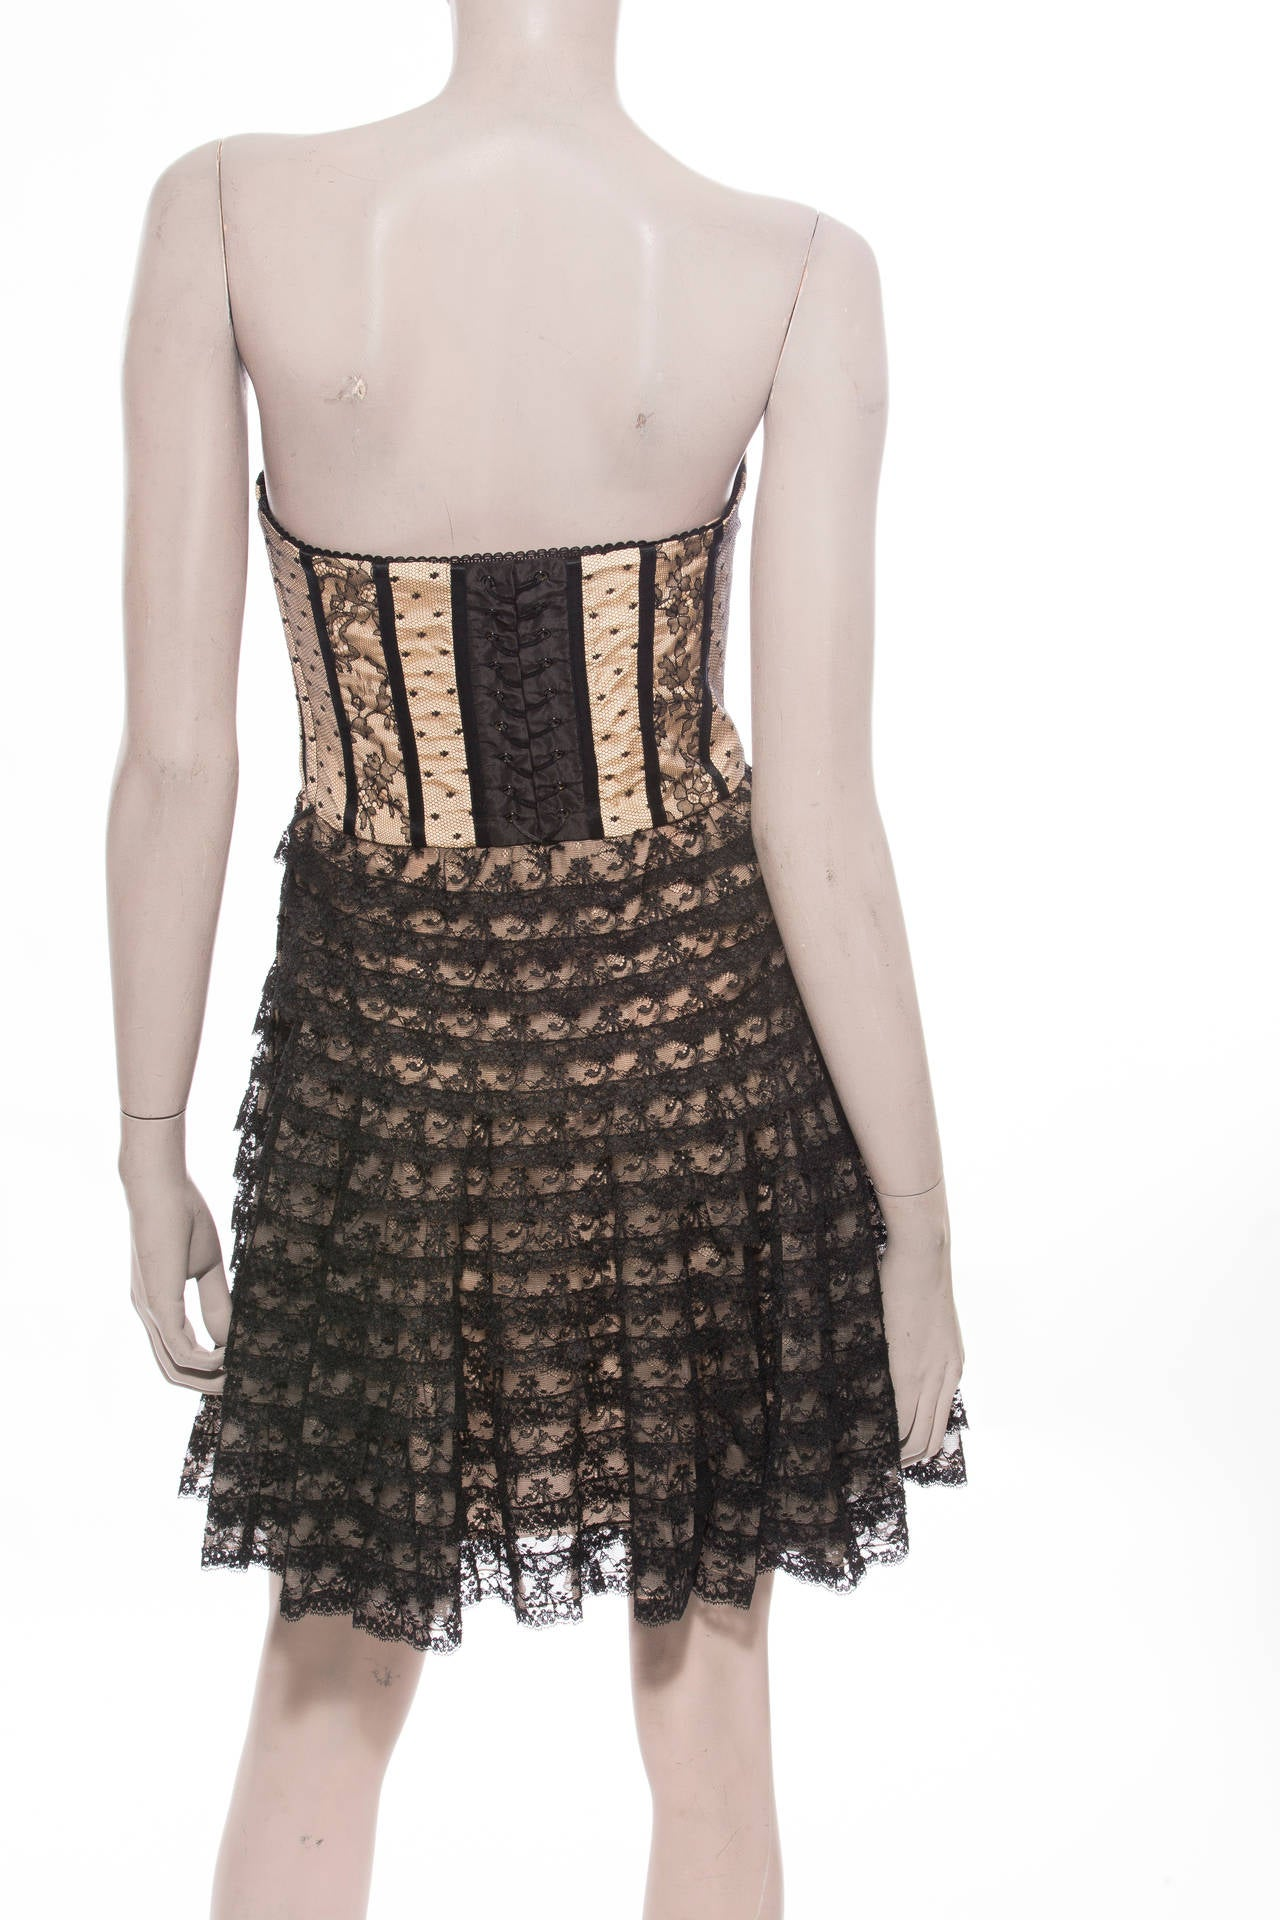 Christian Dior By John Galliano Strapless Lace Dress 3